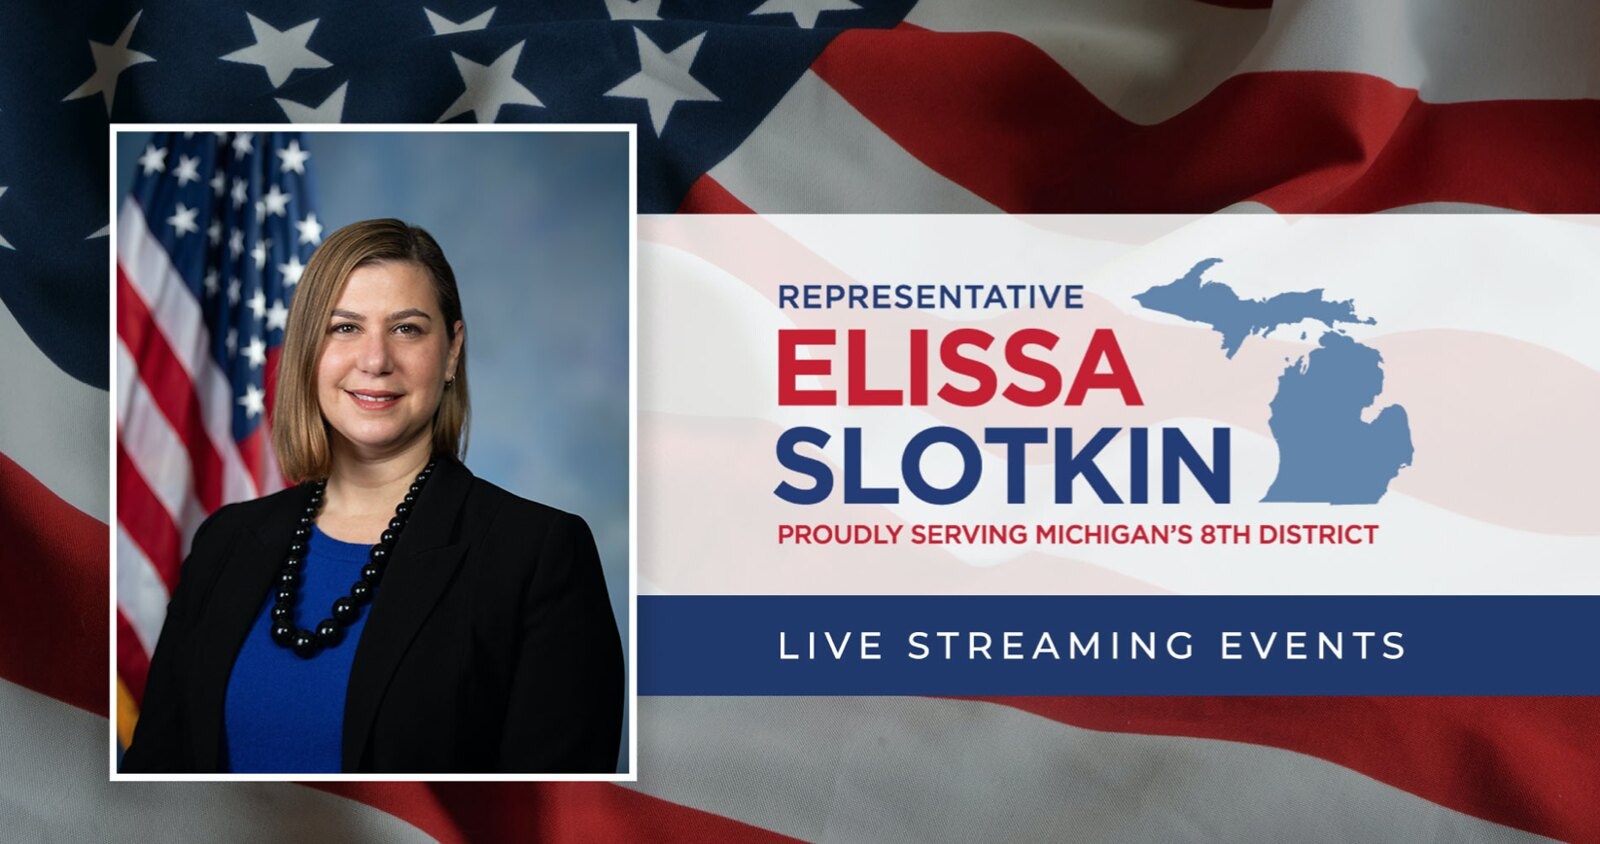 Congresswoman Elissa Slotkin Answers Questions about Returning to School